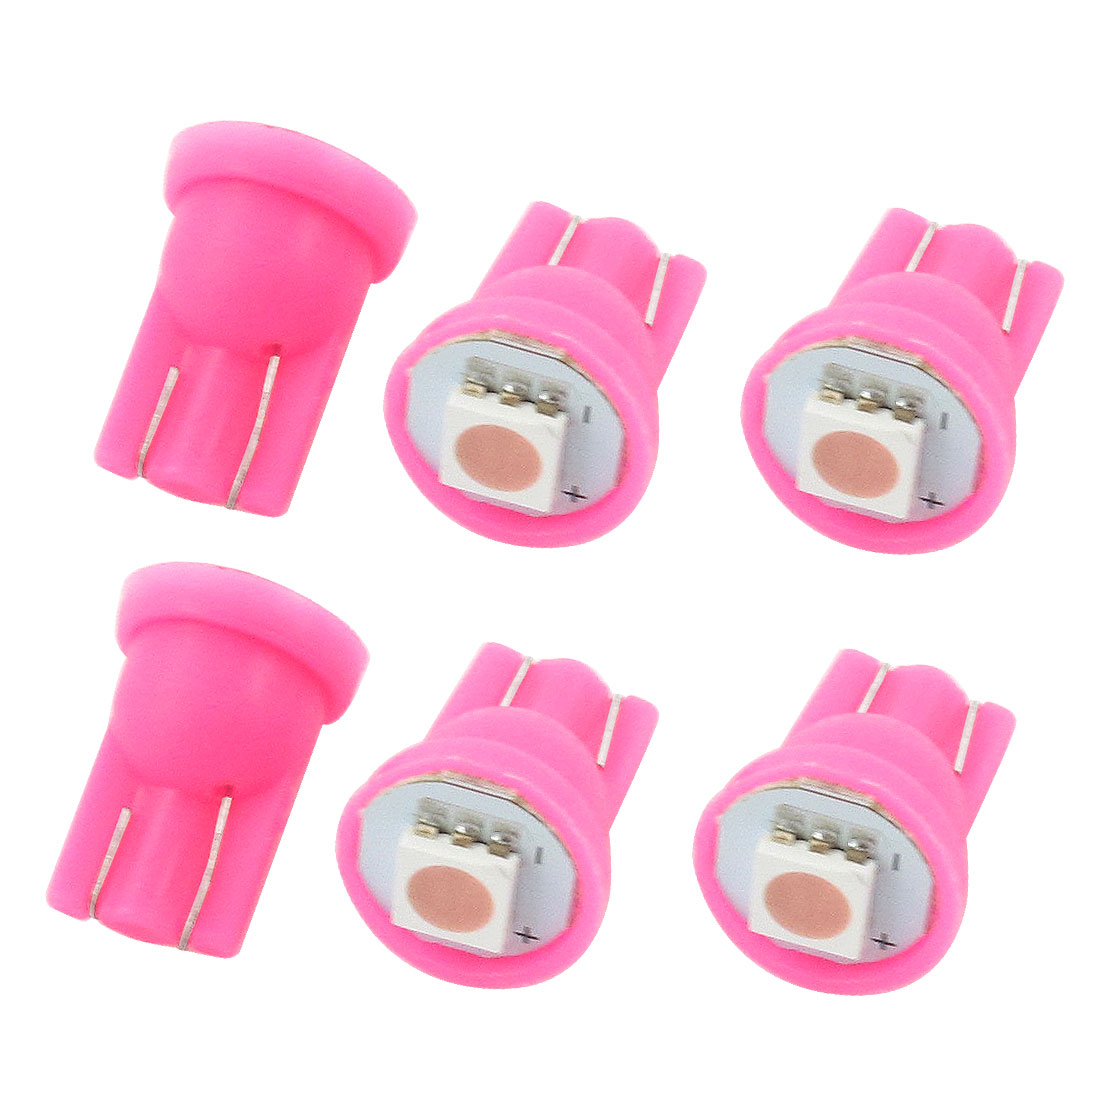 6 Pcs T10 194 168 W5W Wedge 5050 Pink 1-SMD LED 12V Dashboard Light Bulbs for Car